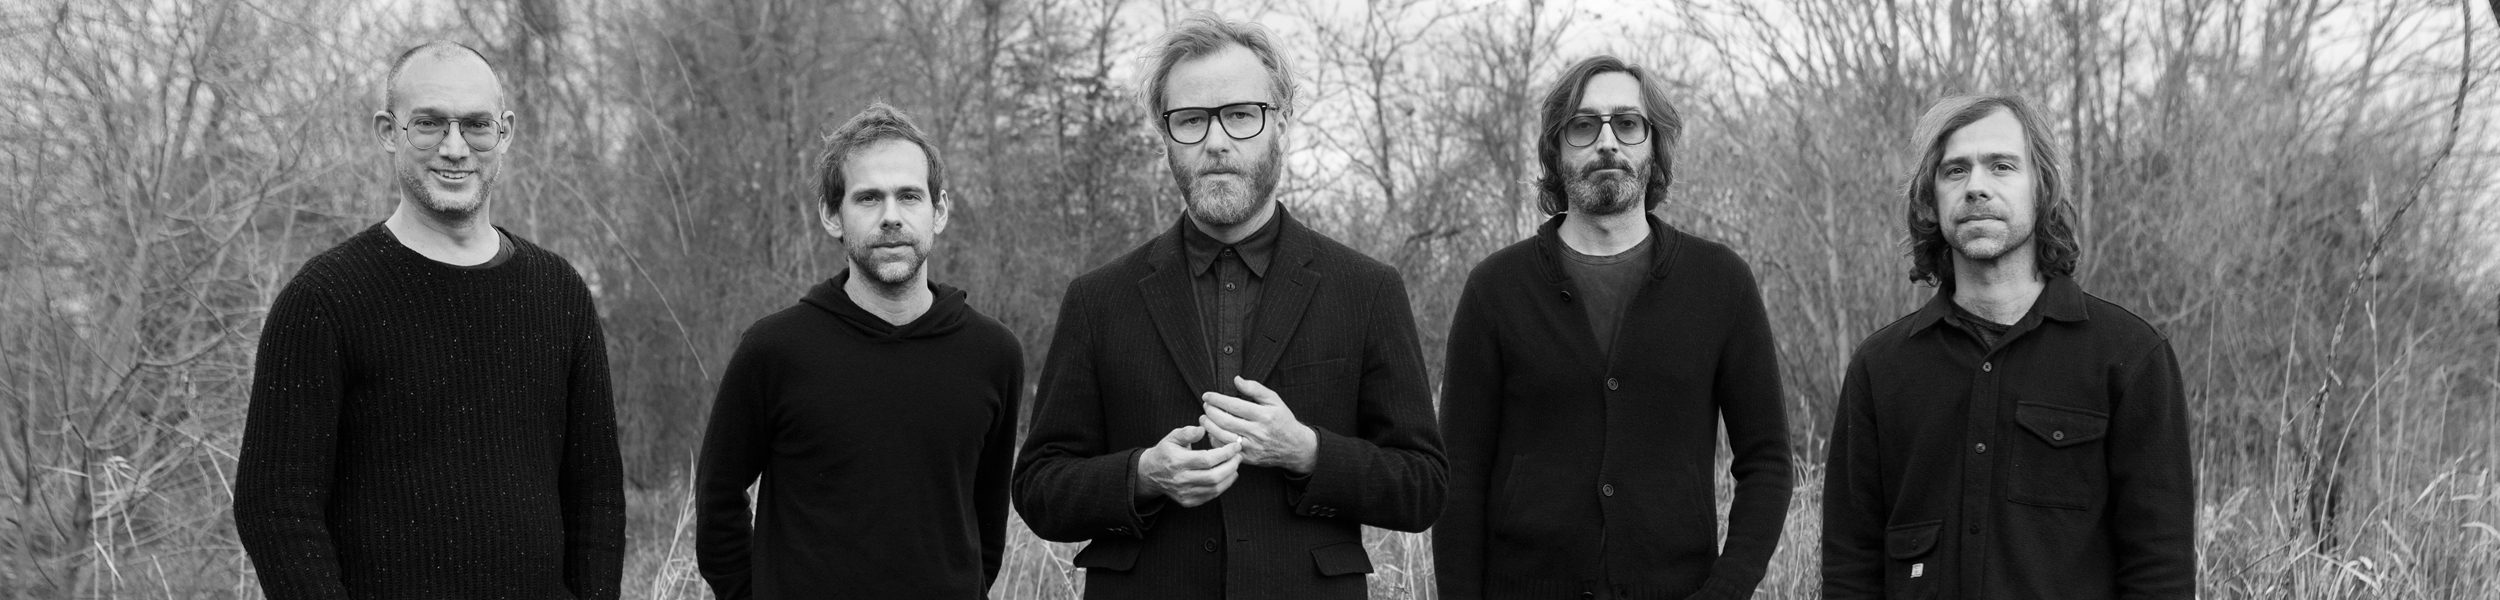 The National - The National & Stornoway iTunes Live EP's On Sale Now